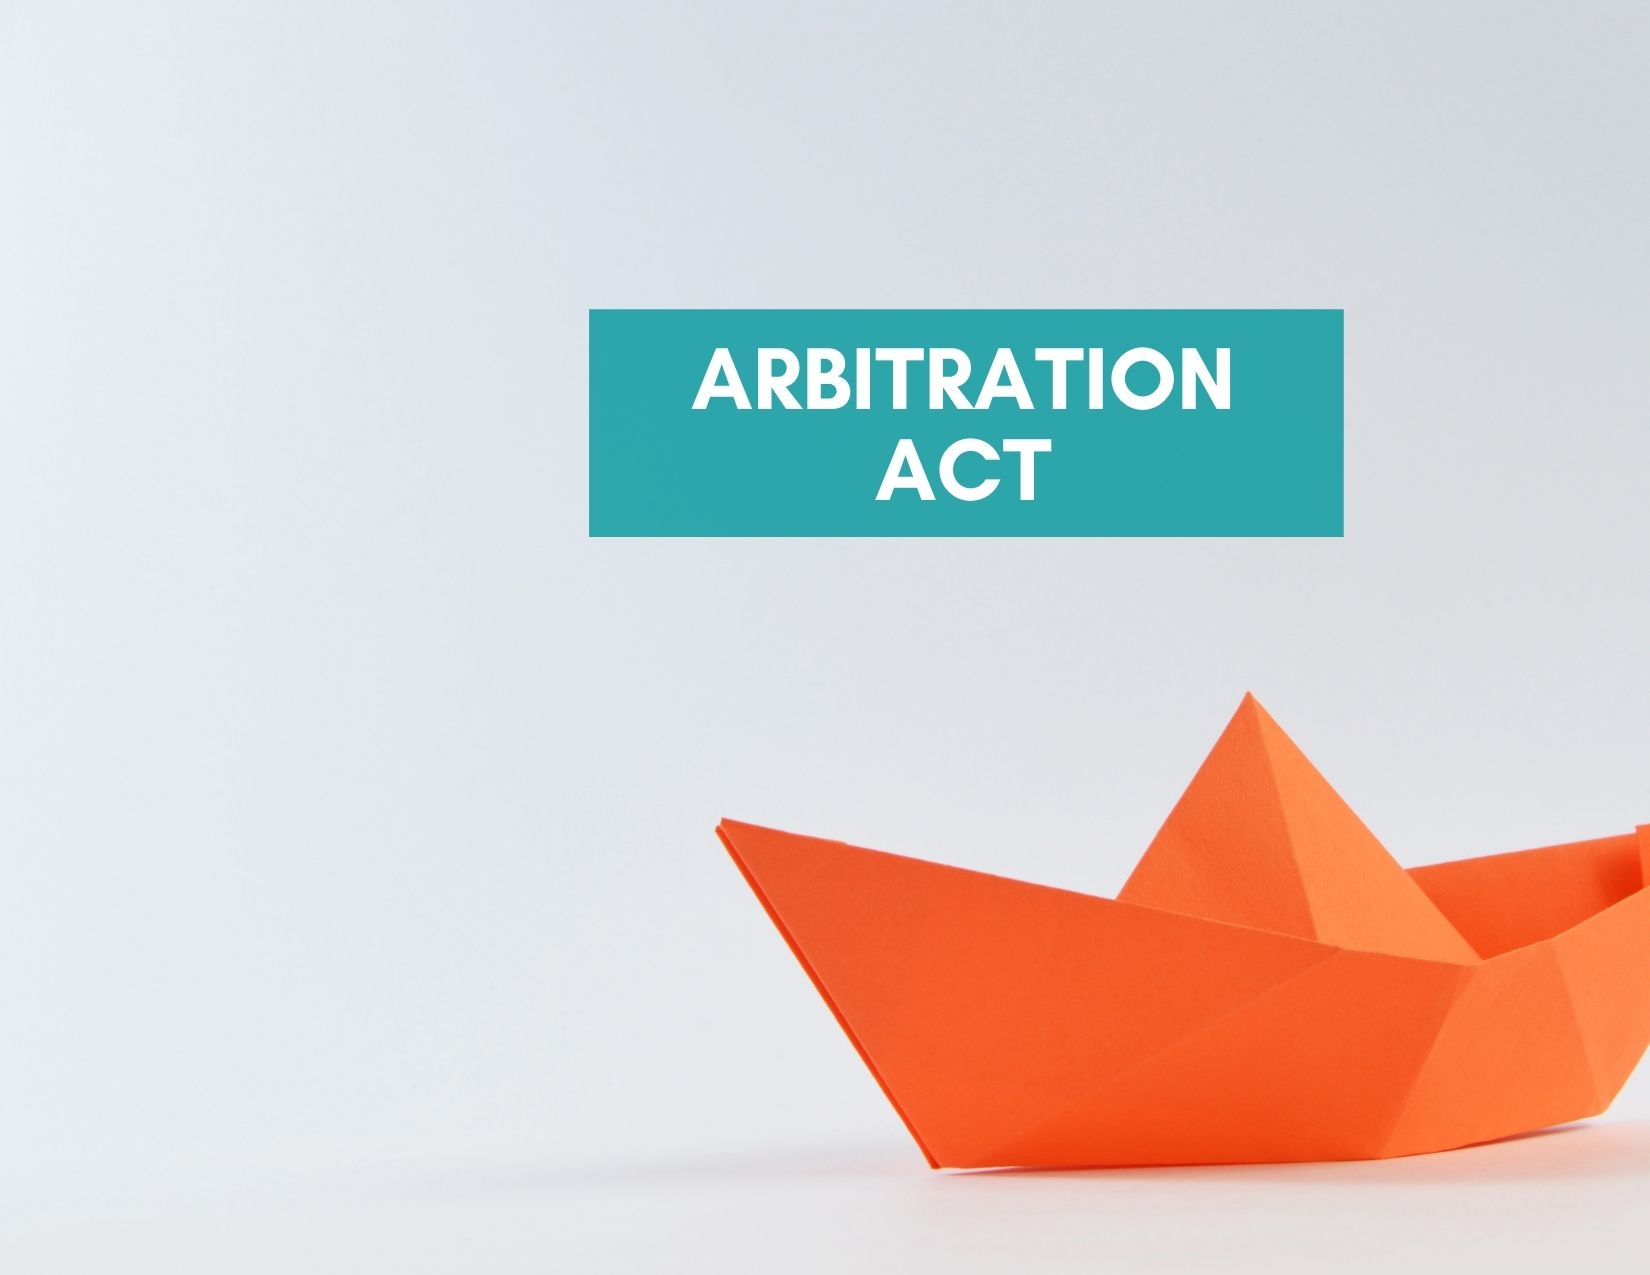 Stay of Proceedings under Arbitration Act for A Judgment In Default